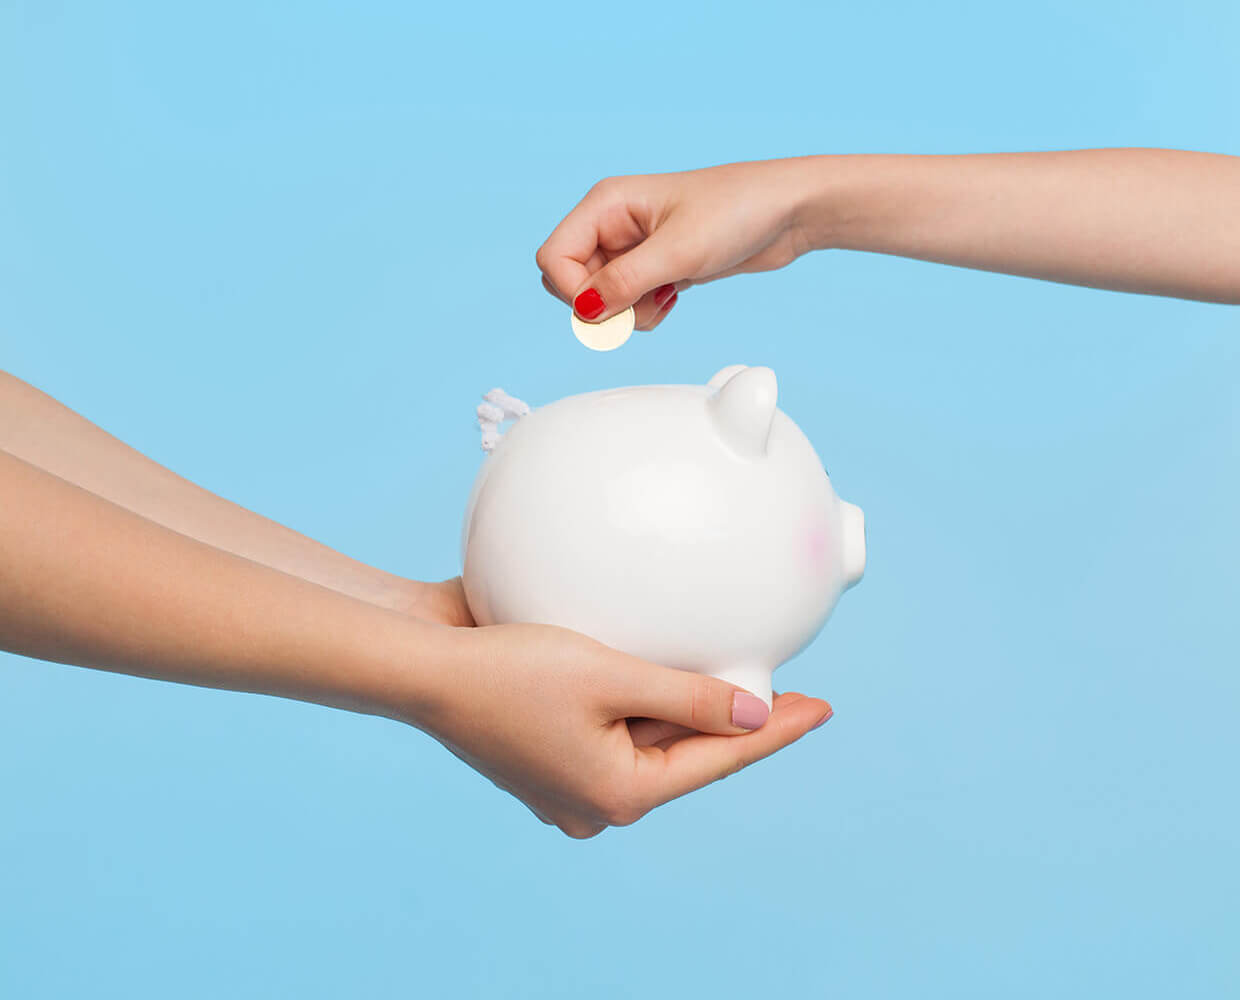 An arm holding a piggy bank and another inserting a coin